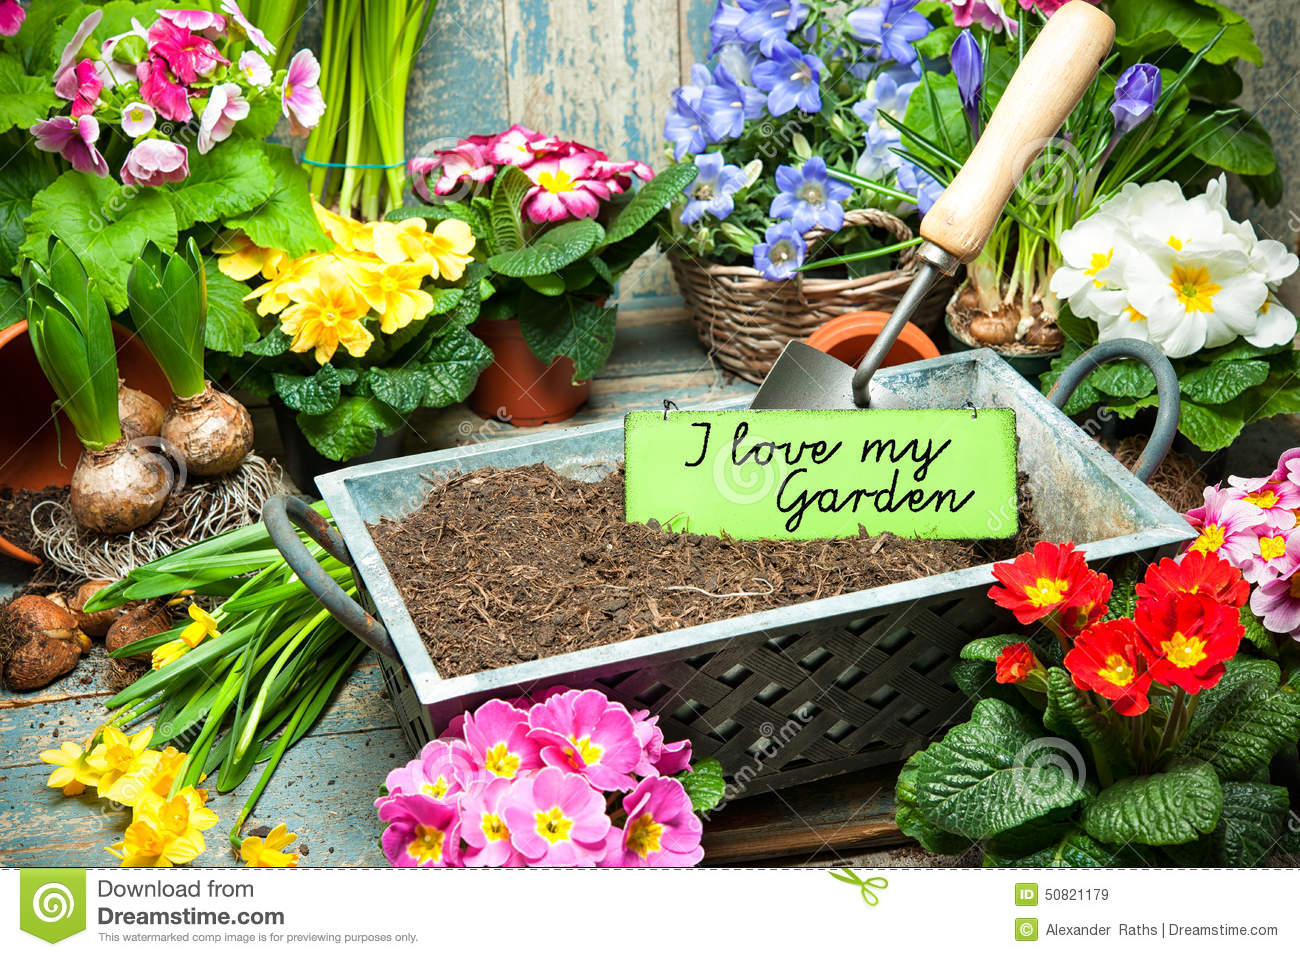 I love my garden stock photo image 50821179 for Gardening is my passion